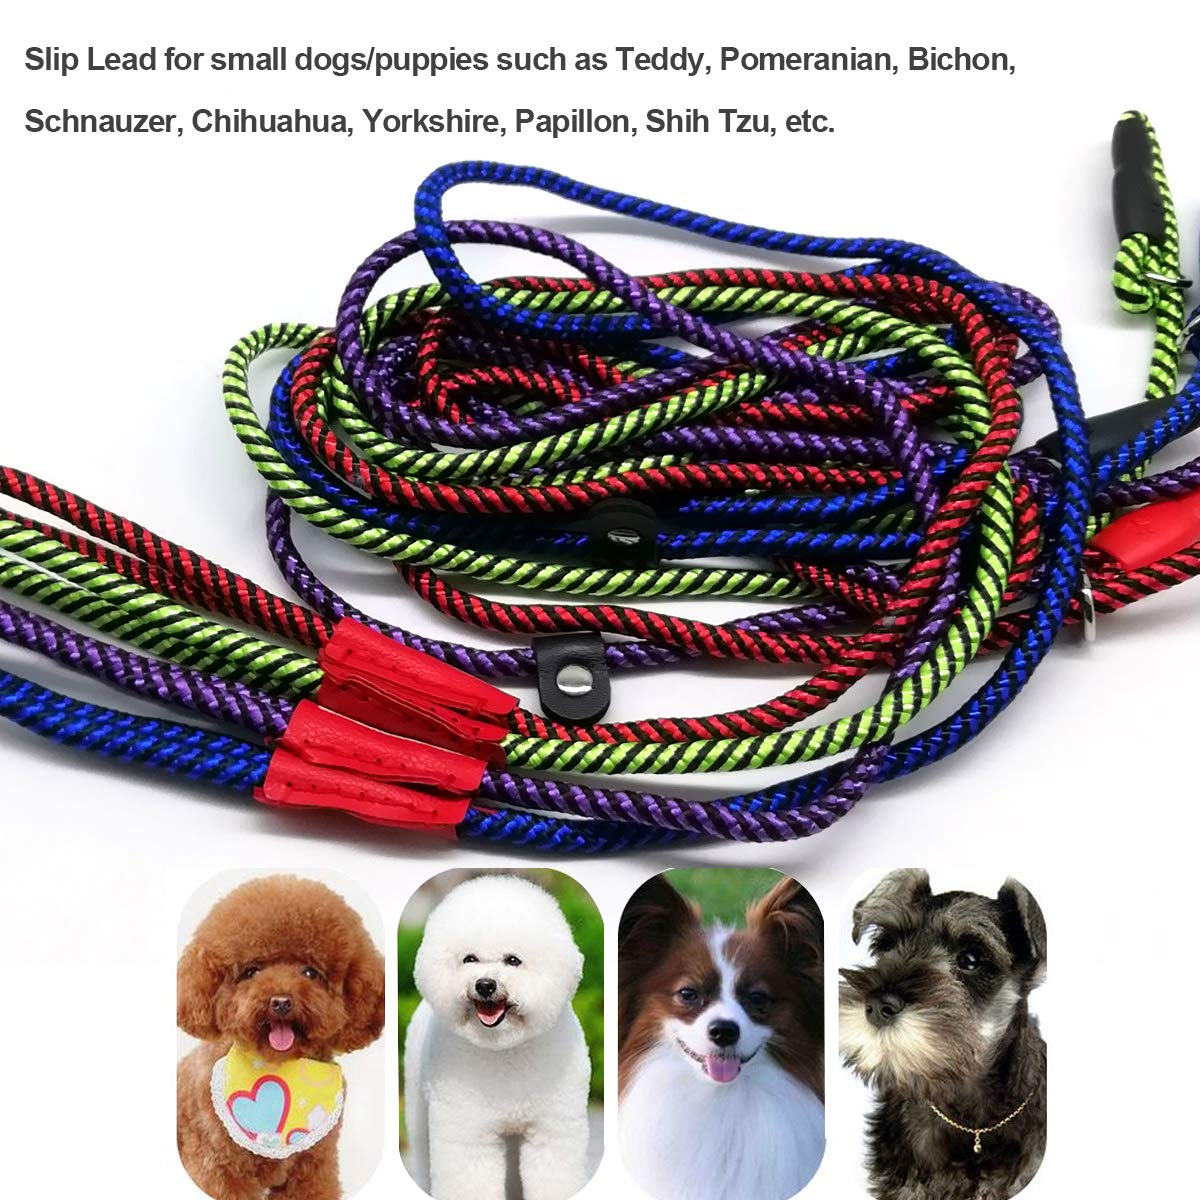 Green MayPaw Dog Leash Rope Slip Lead,1//4-5Ft Durable Nylon Puppy Lead Colorful Adjustable Training Pet Lead for Small and X-small Dogs